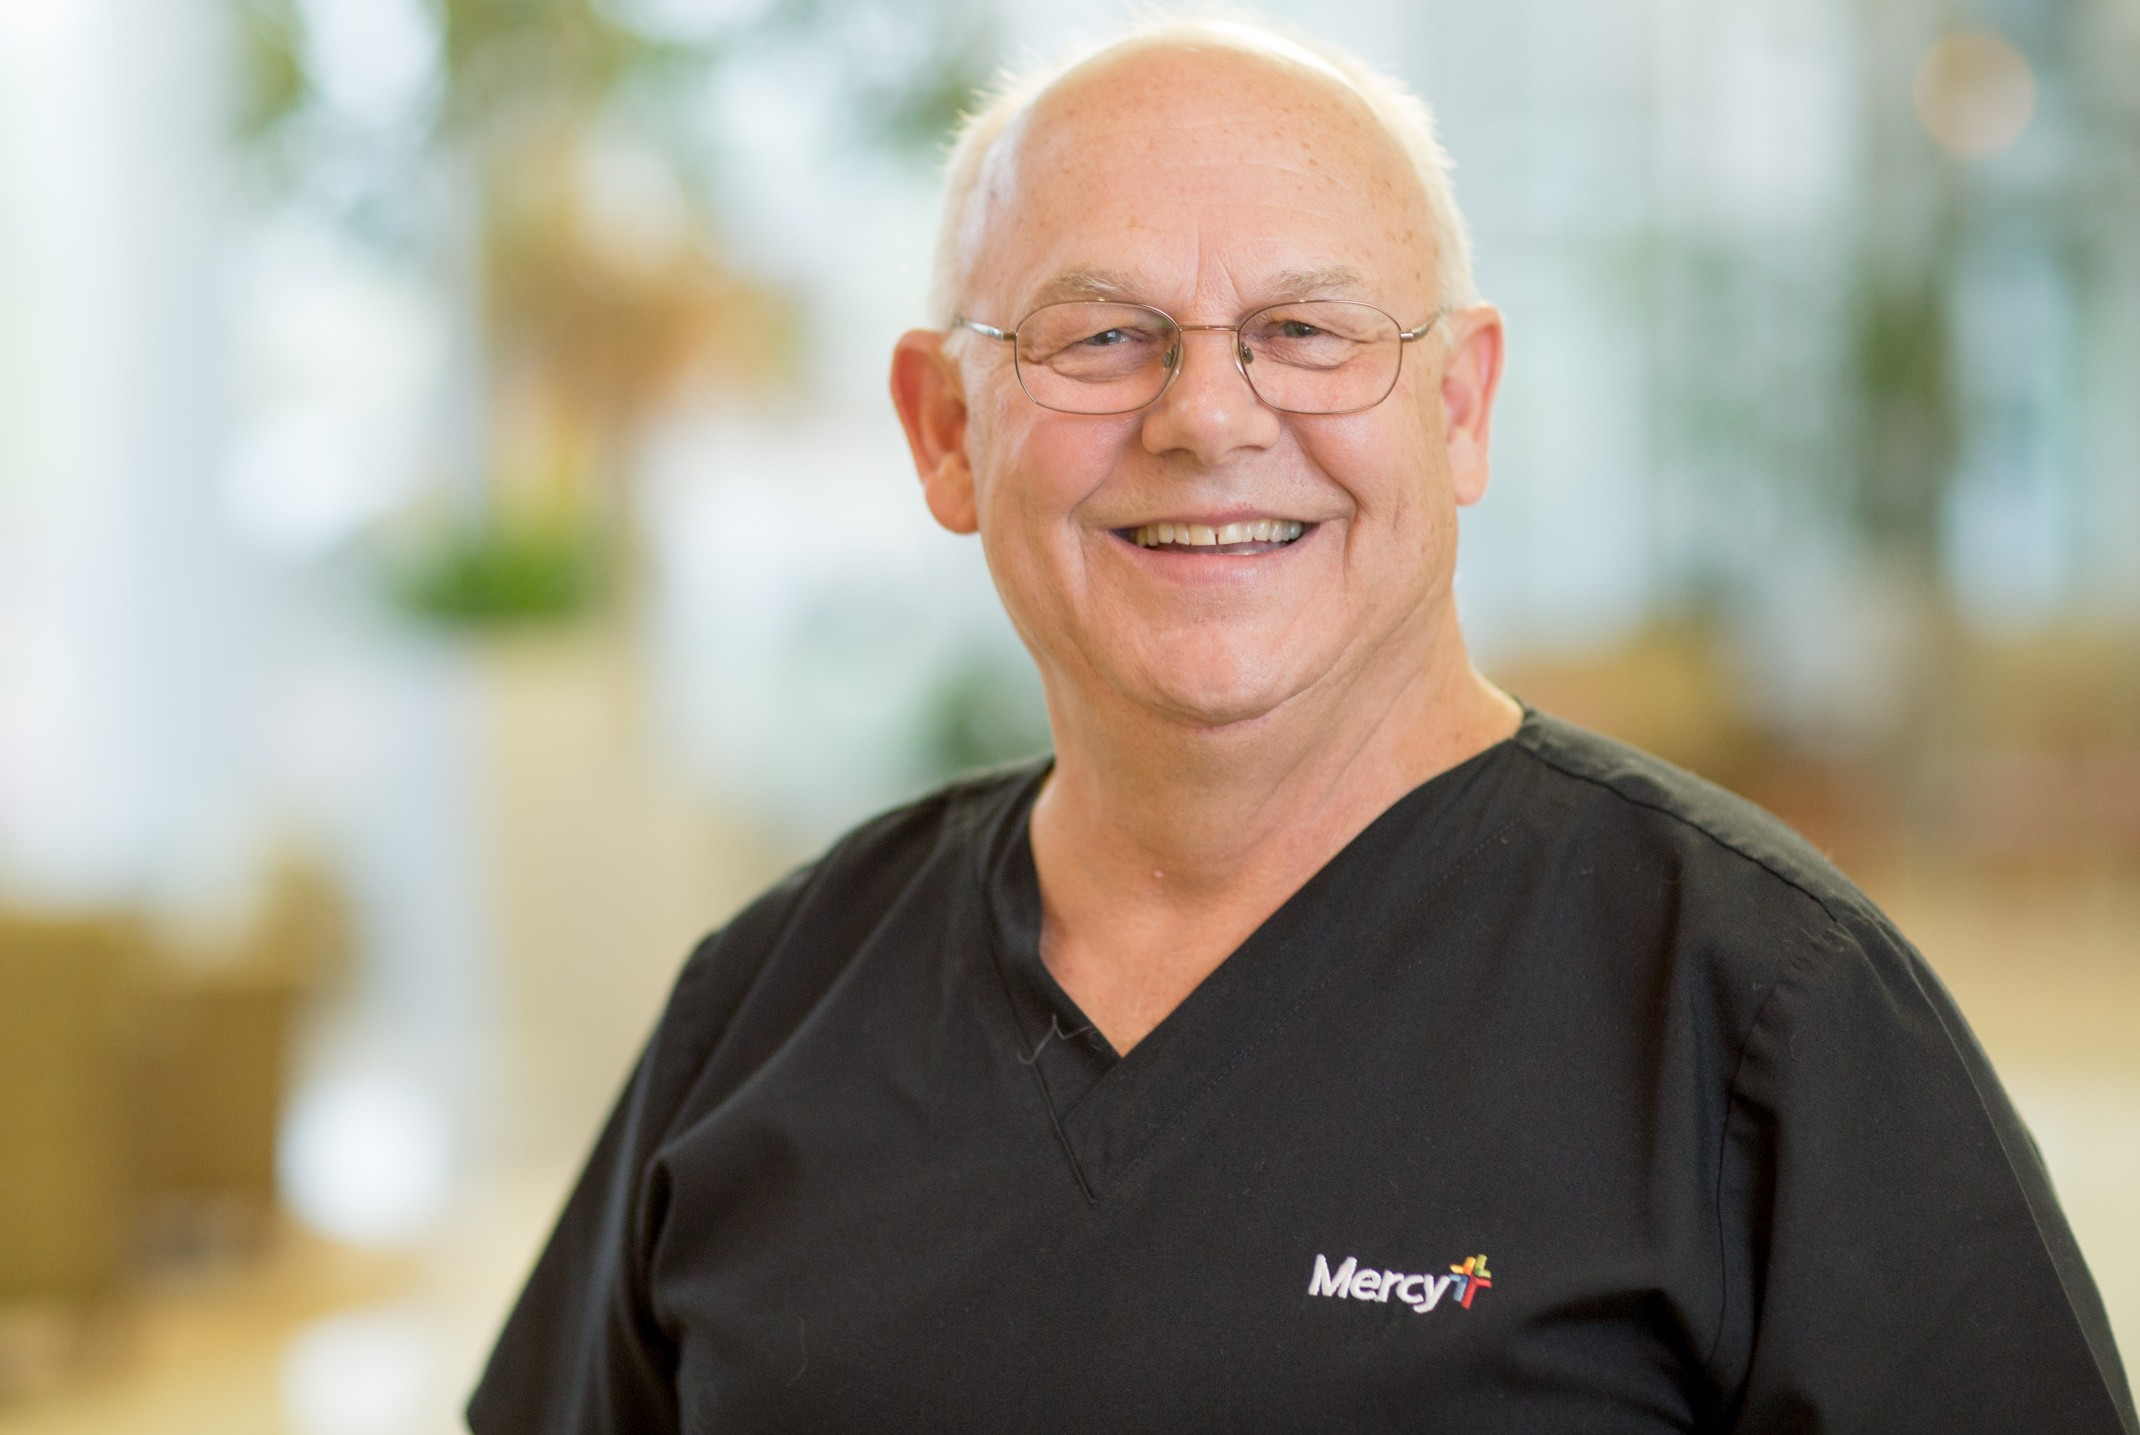 Tom Kane is celebrating 50 years of service at Mercy Hospital St. Louis.